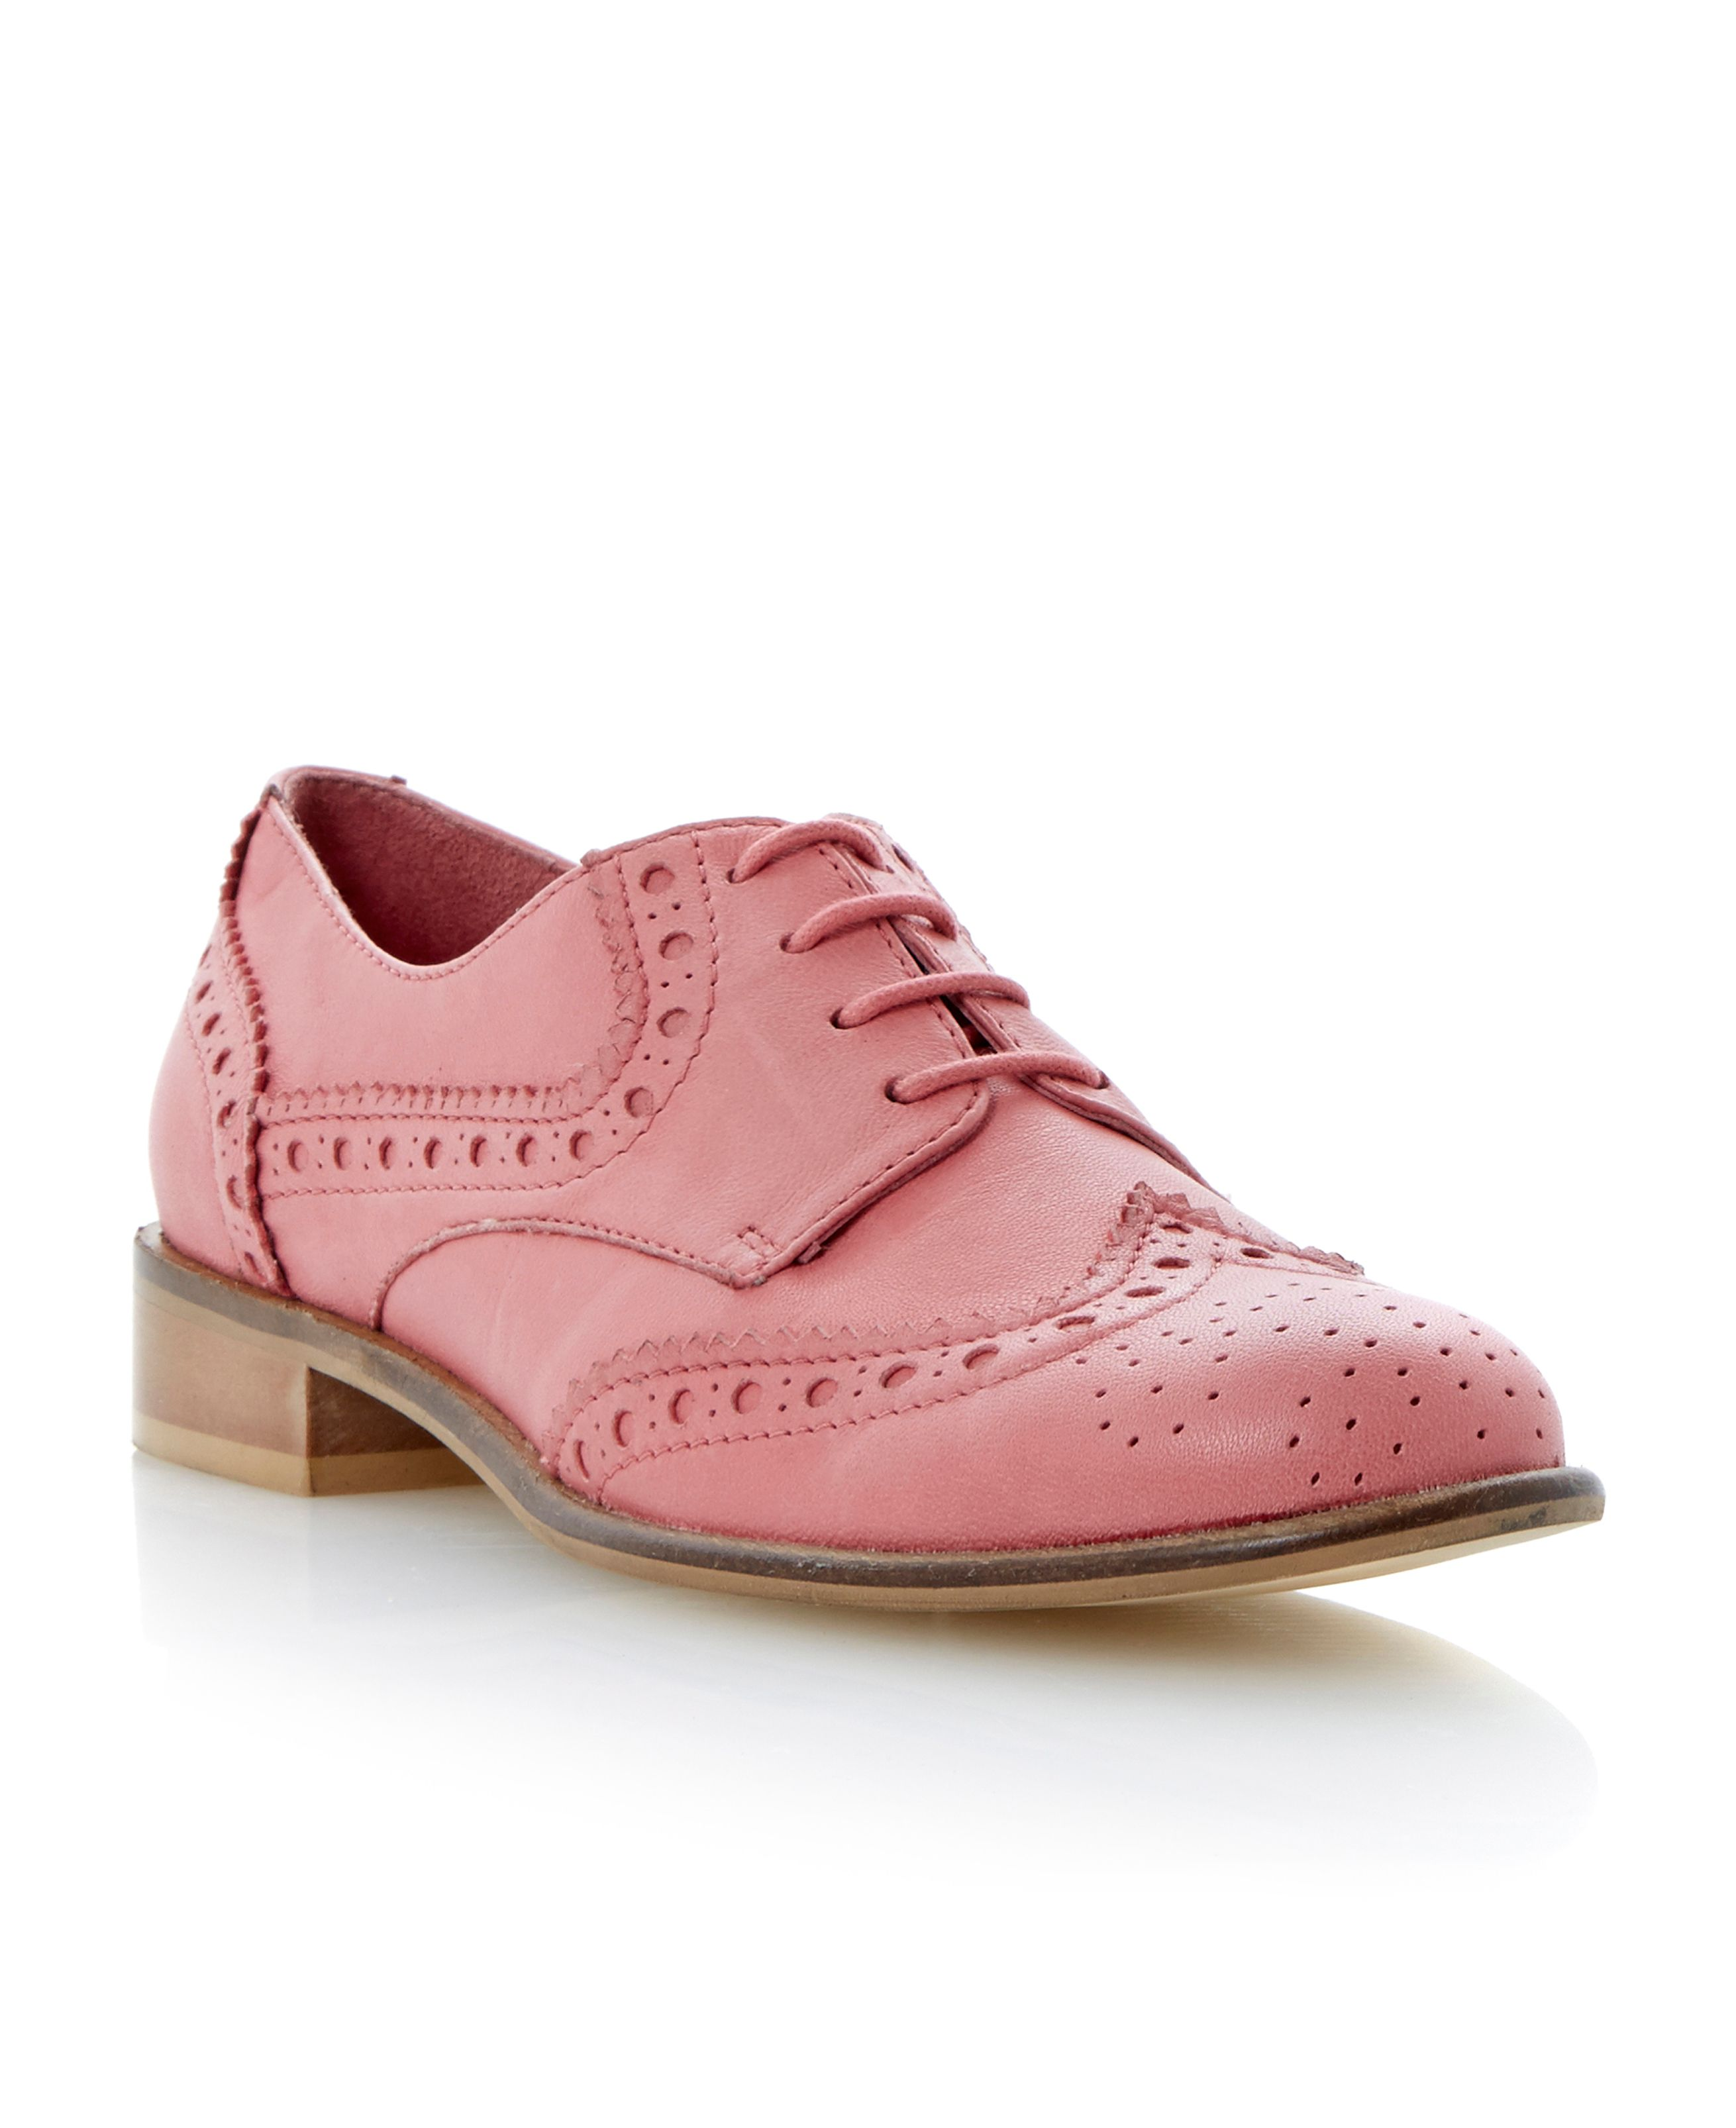 Langbury leather almond toe brogue shoes